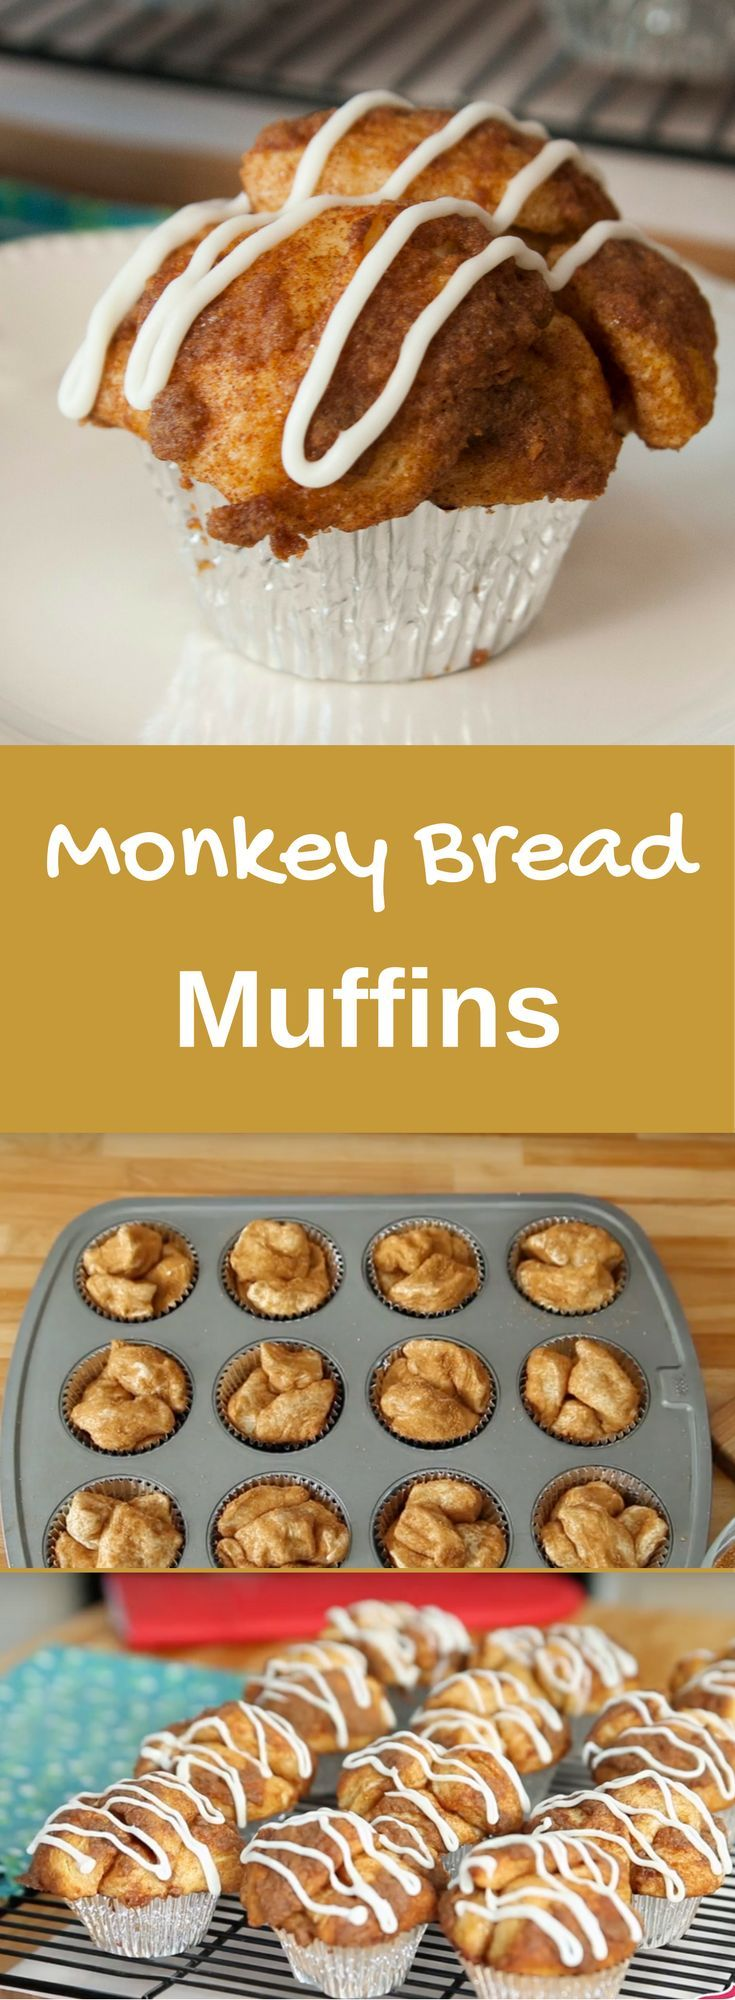 Monkey Bread Muffins recipe uses biscuit dough and makes it into fun and yummy muffins.